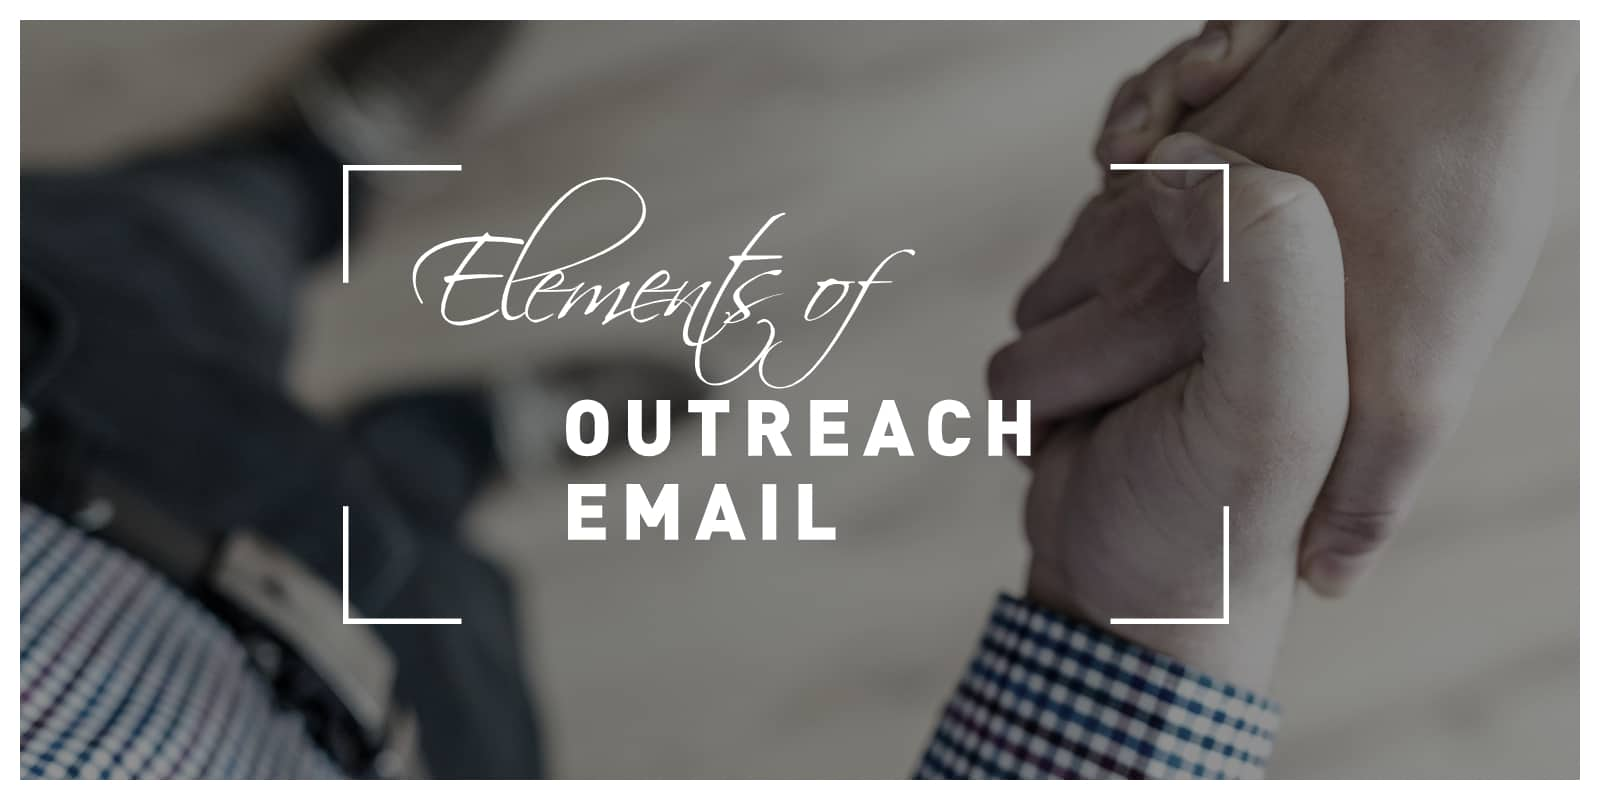 Outreach Email Elements